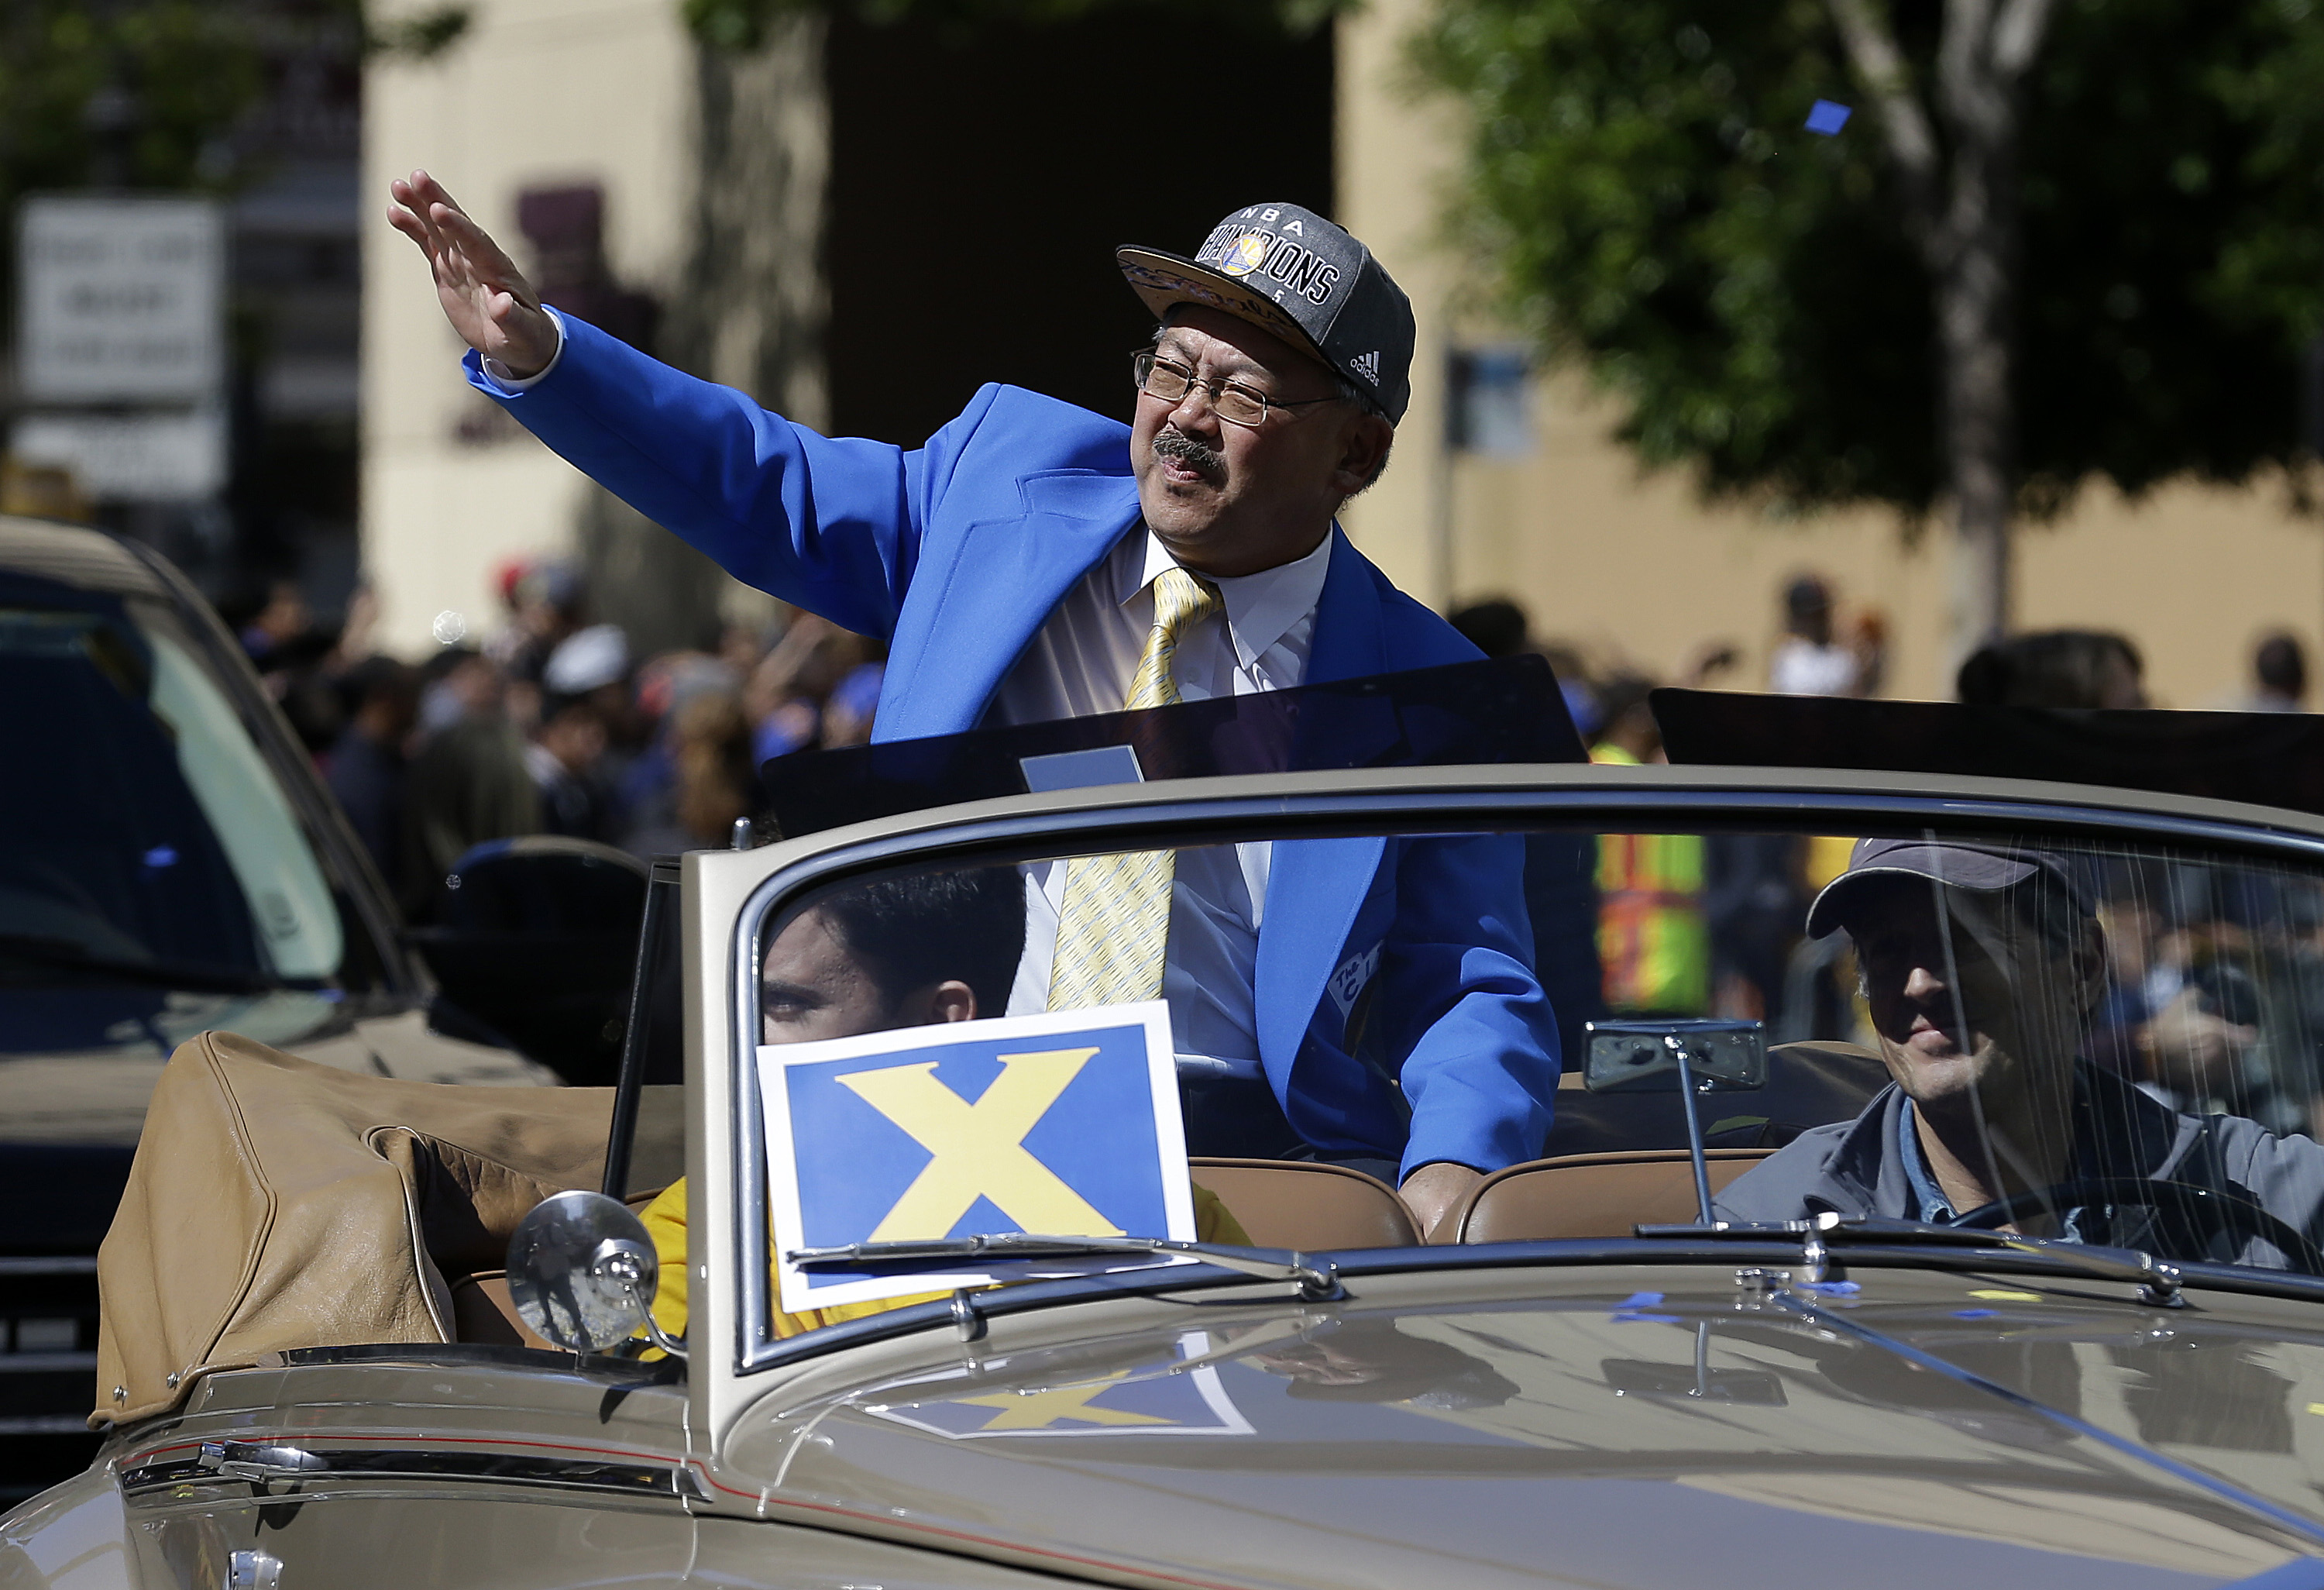 <div class='meta'><div class='origin-logo' data-origin='none'></div><span class='caption-text' data-credit='Jeff Chiu/AP Photo'>San Francisco Mayor Ed Lee waves during a parade for the Golden State Warriors winning the NBA championship in Oakland, Calif., Friday, June 19, 2015.</span></div>